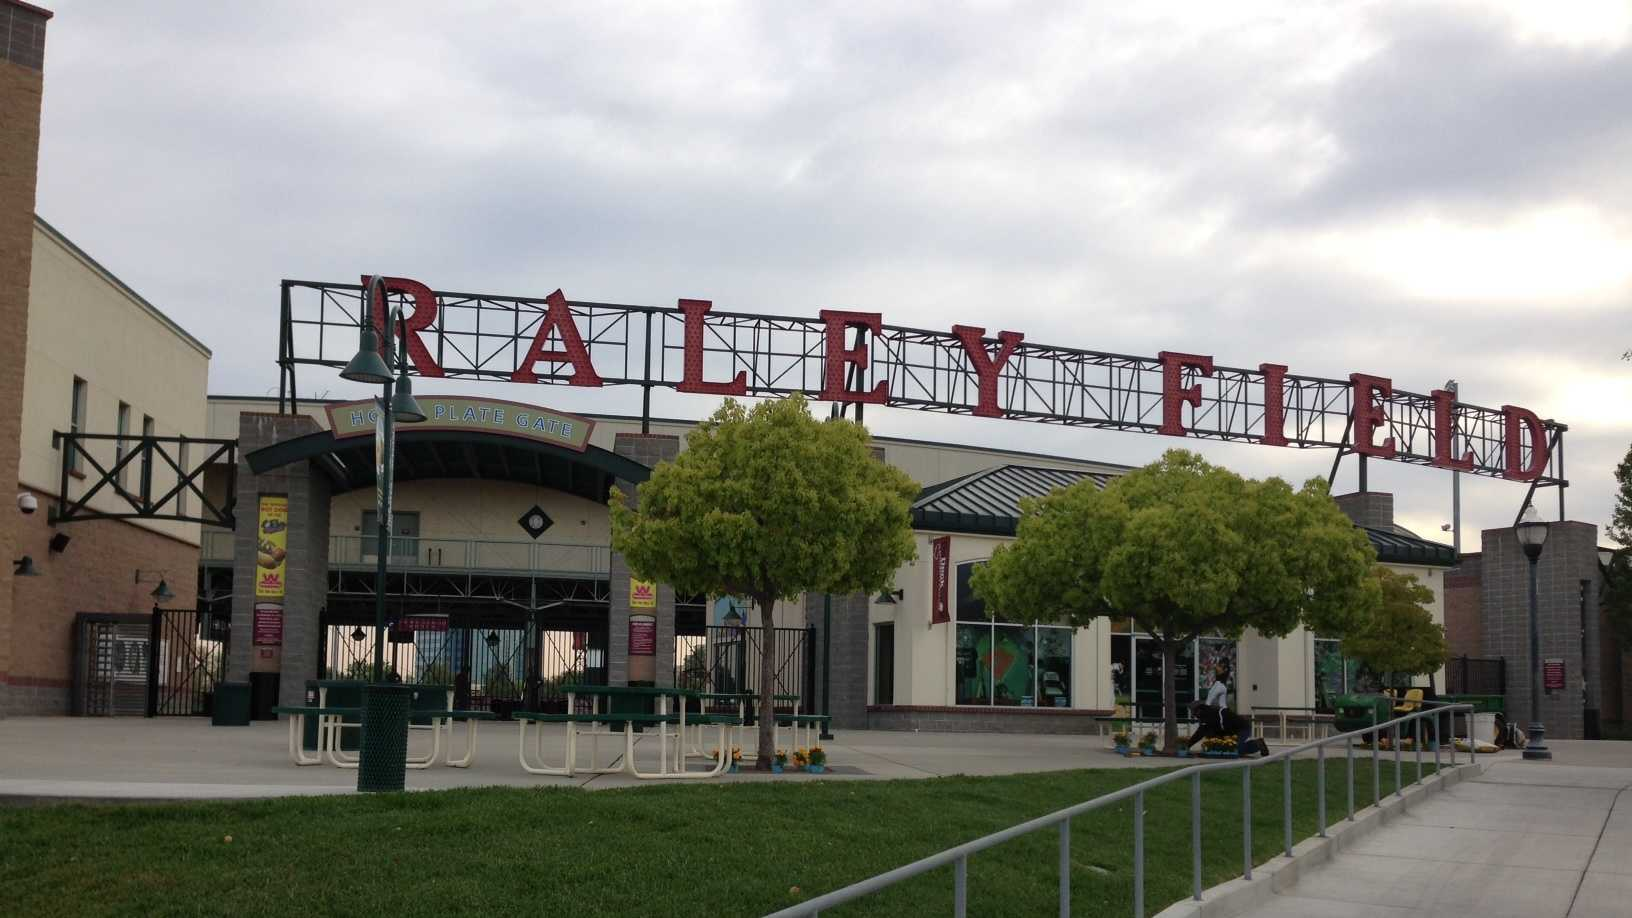 Parking -- Raley Field has some new parking around the stadium. Go toRiverCats.comfor more information.